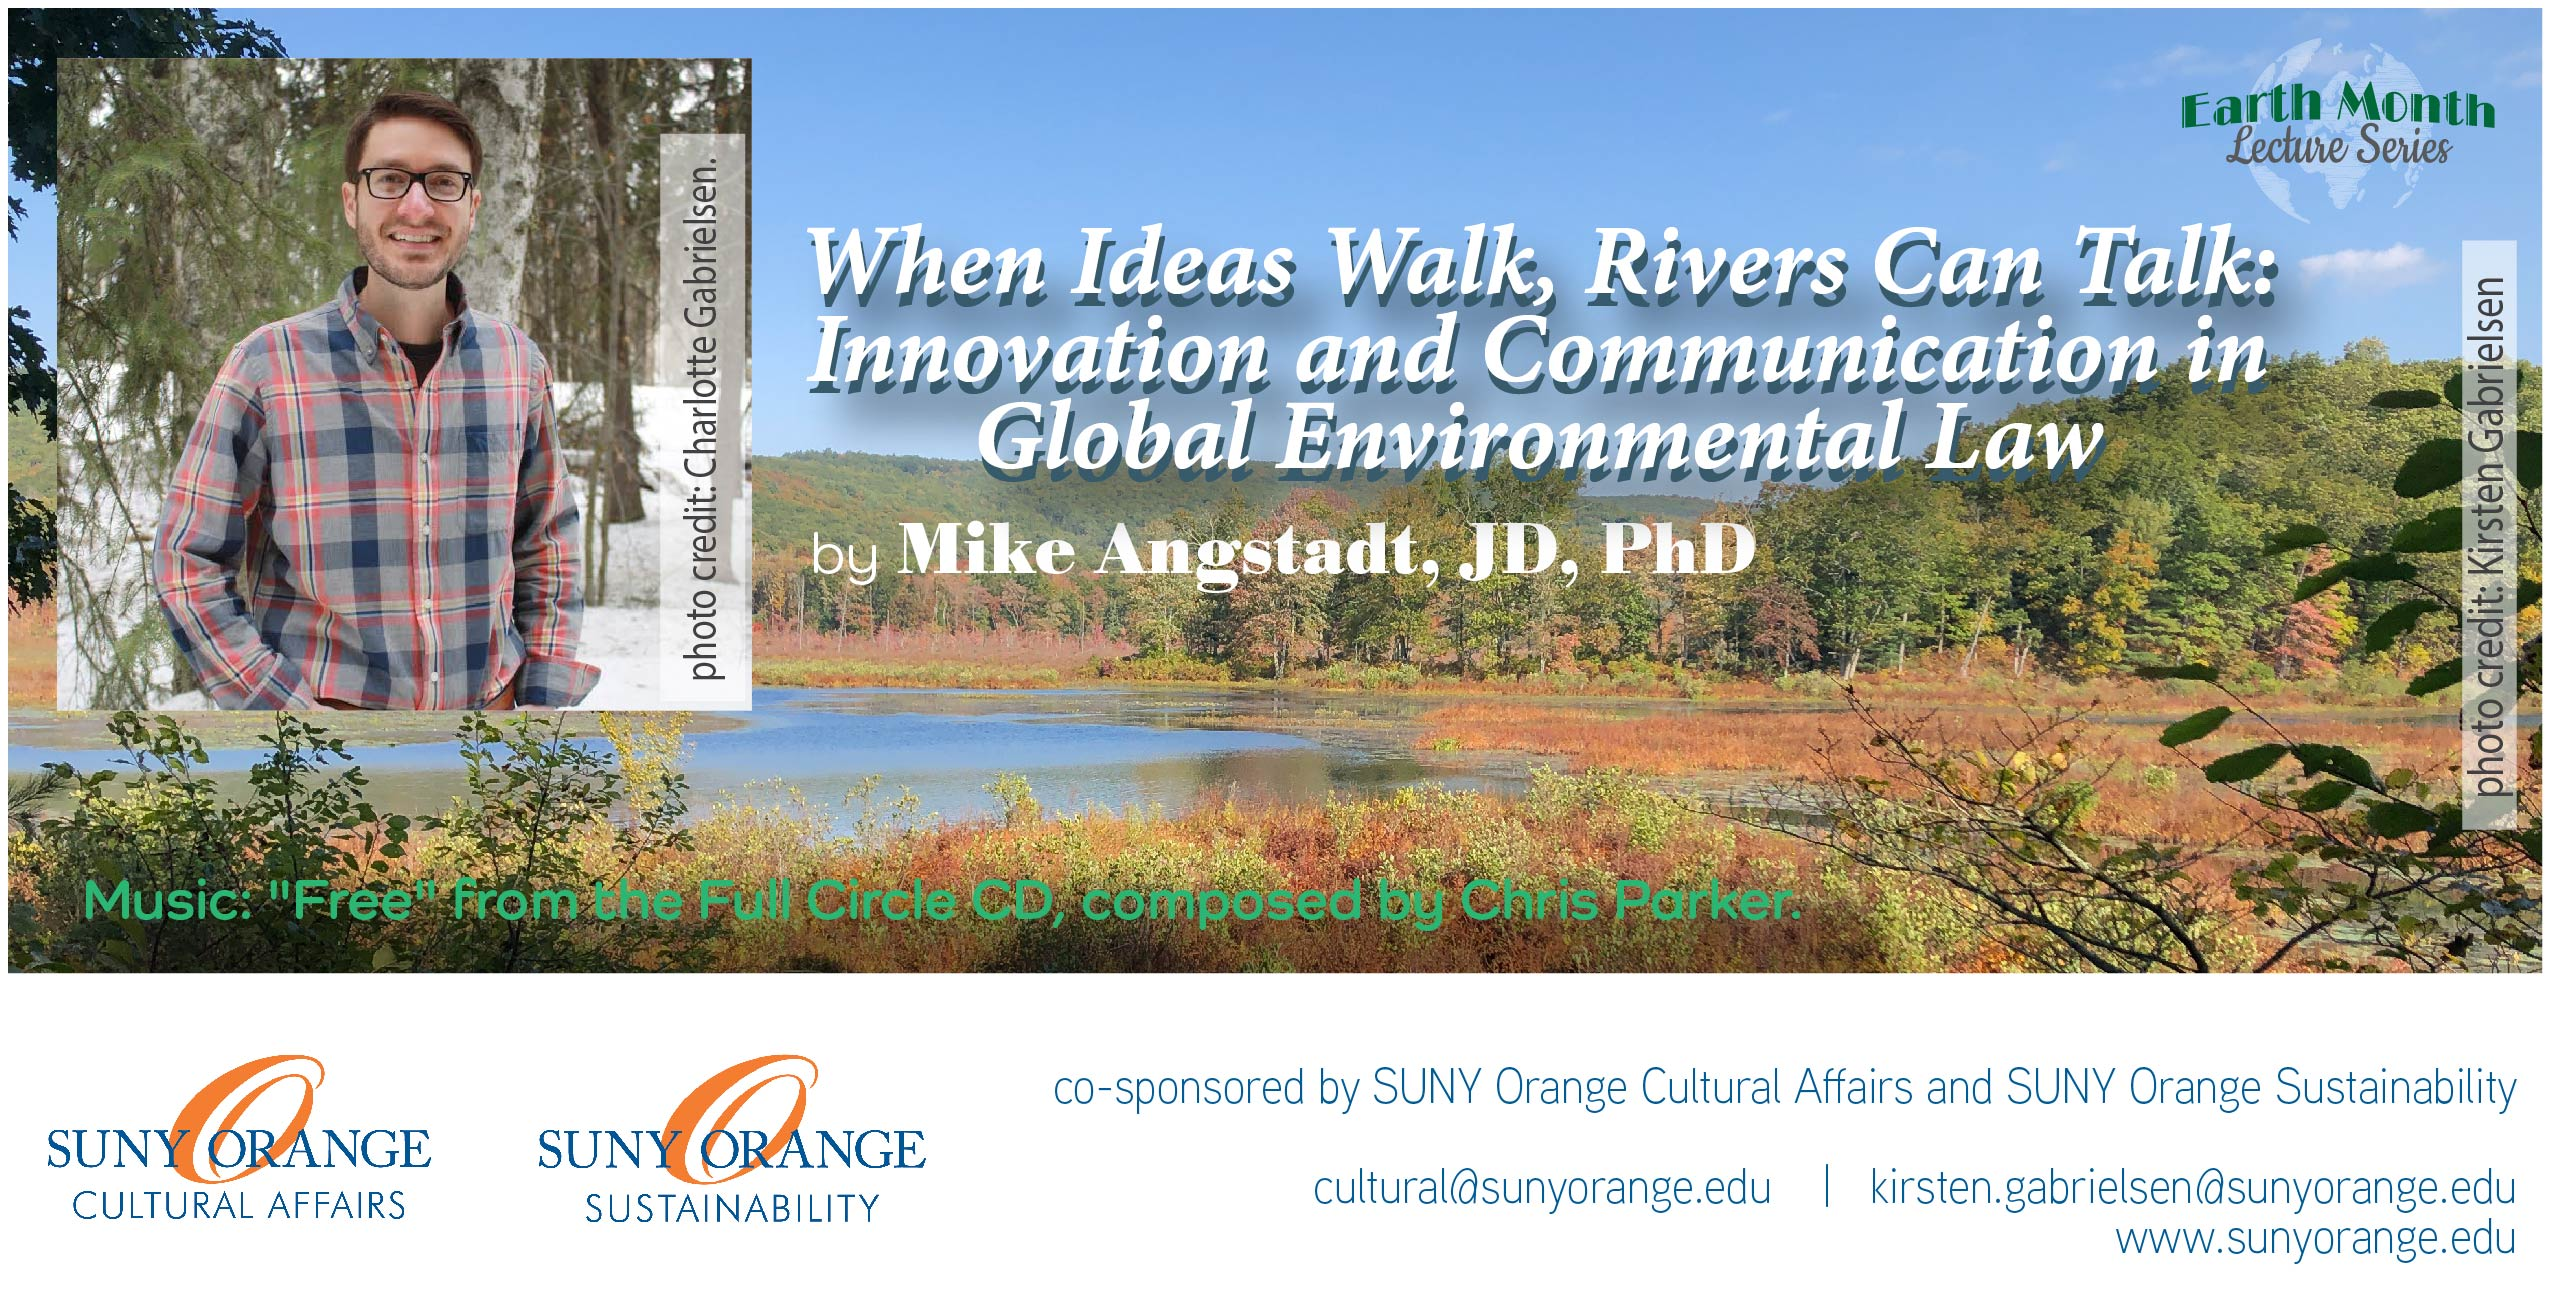 When Ideas Walk, Rivers Can Talk: Innovation and Communication in Global Environmental Law